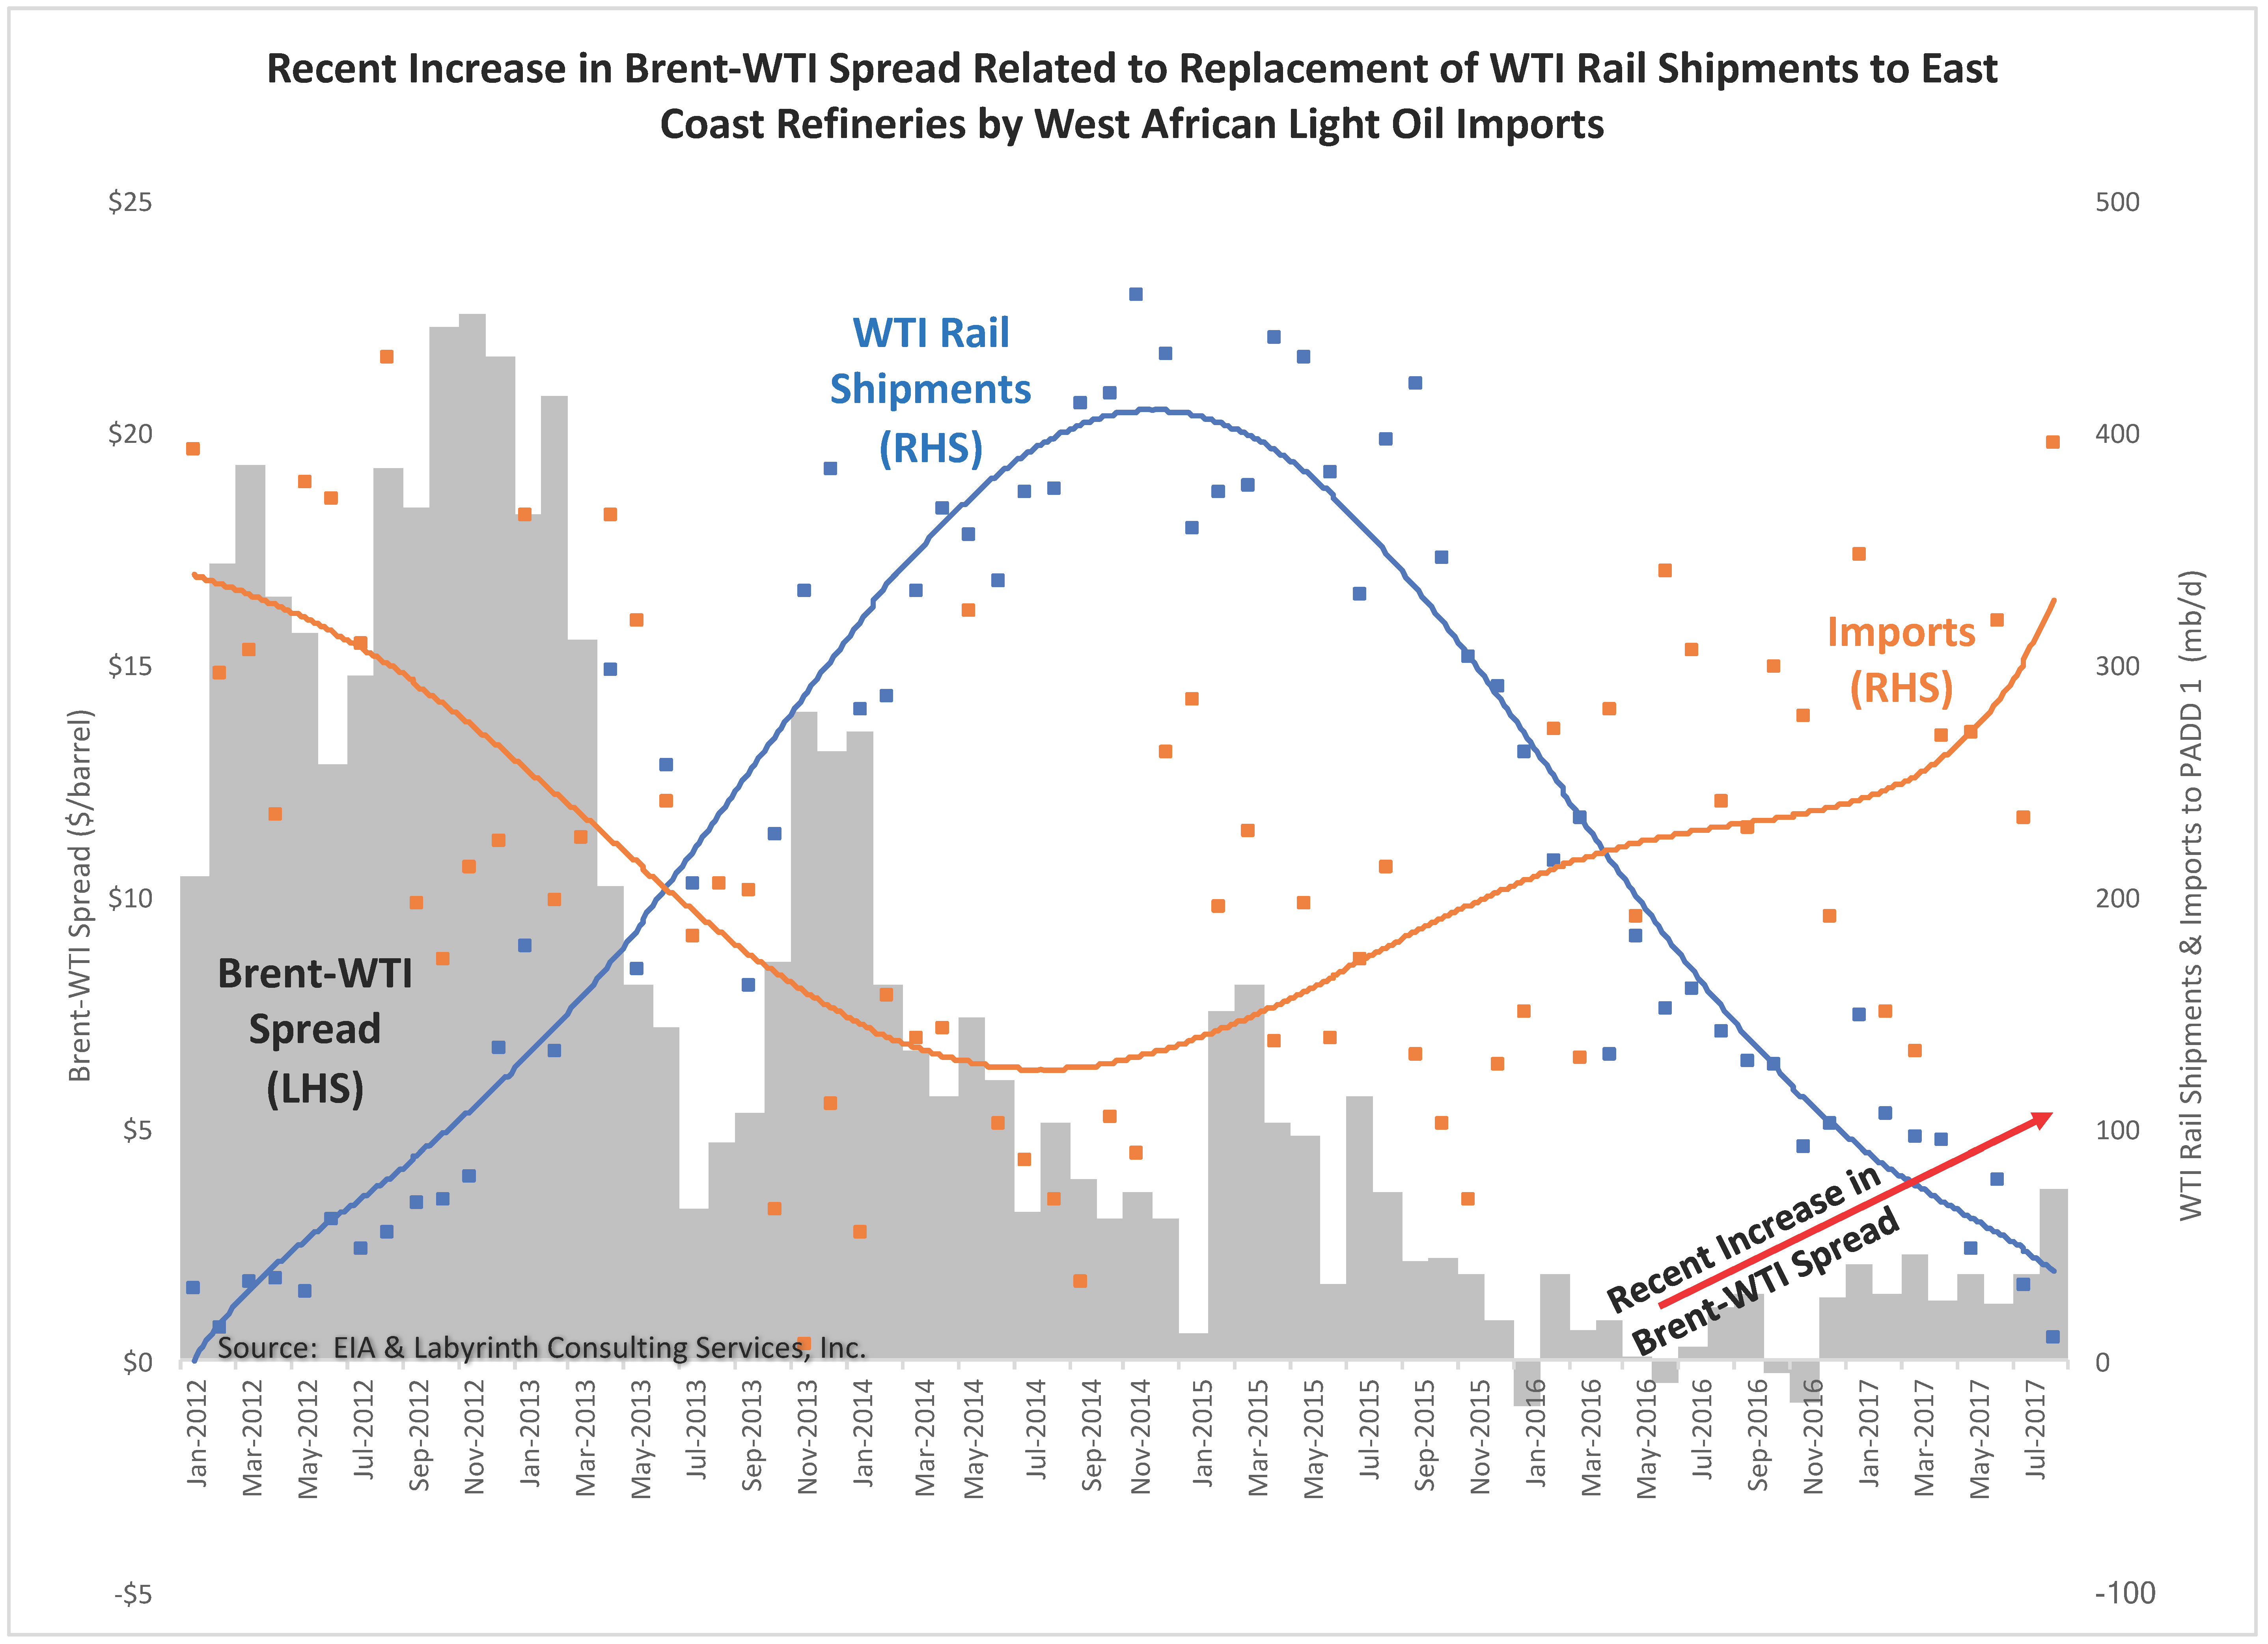 Art Berman Recent Increase in Brent-WTI Spread Related to